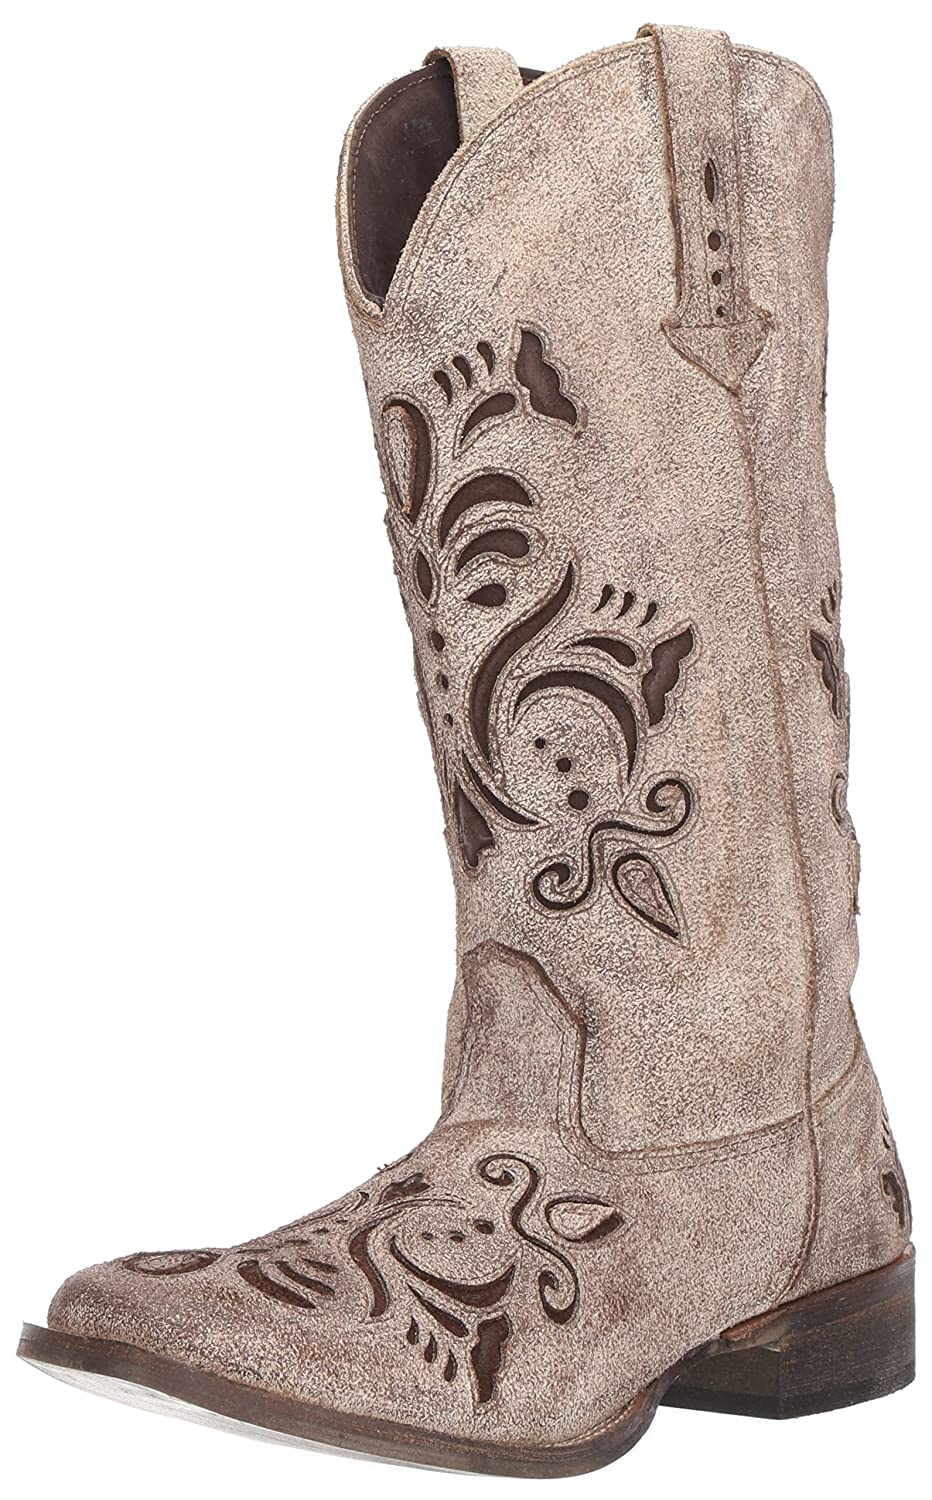 Roper Women's Belle Western Boot B06WWRNHB3 9 B(M) US|Tan